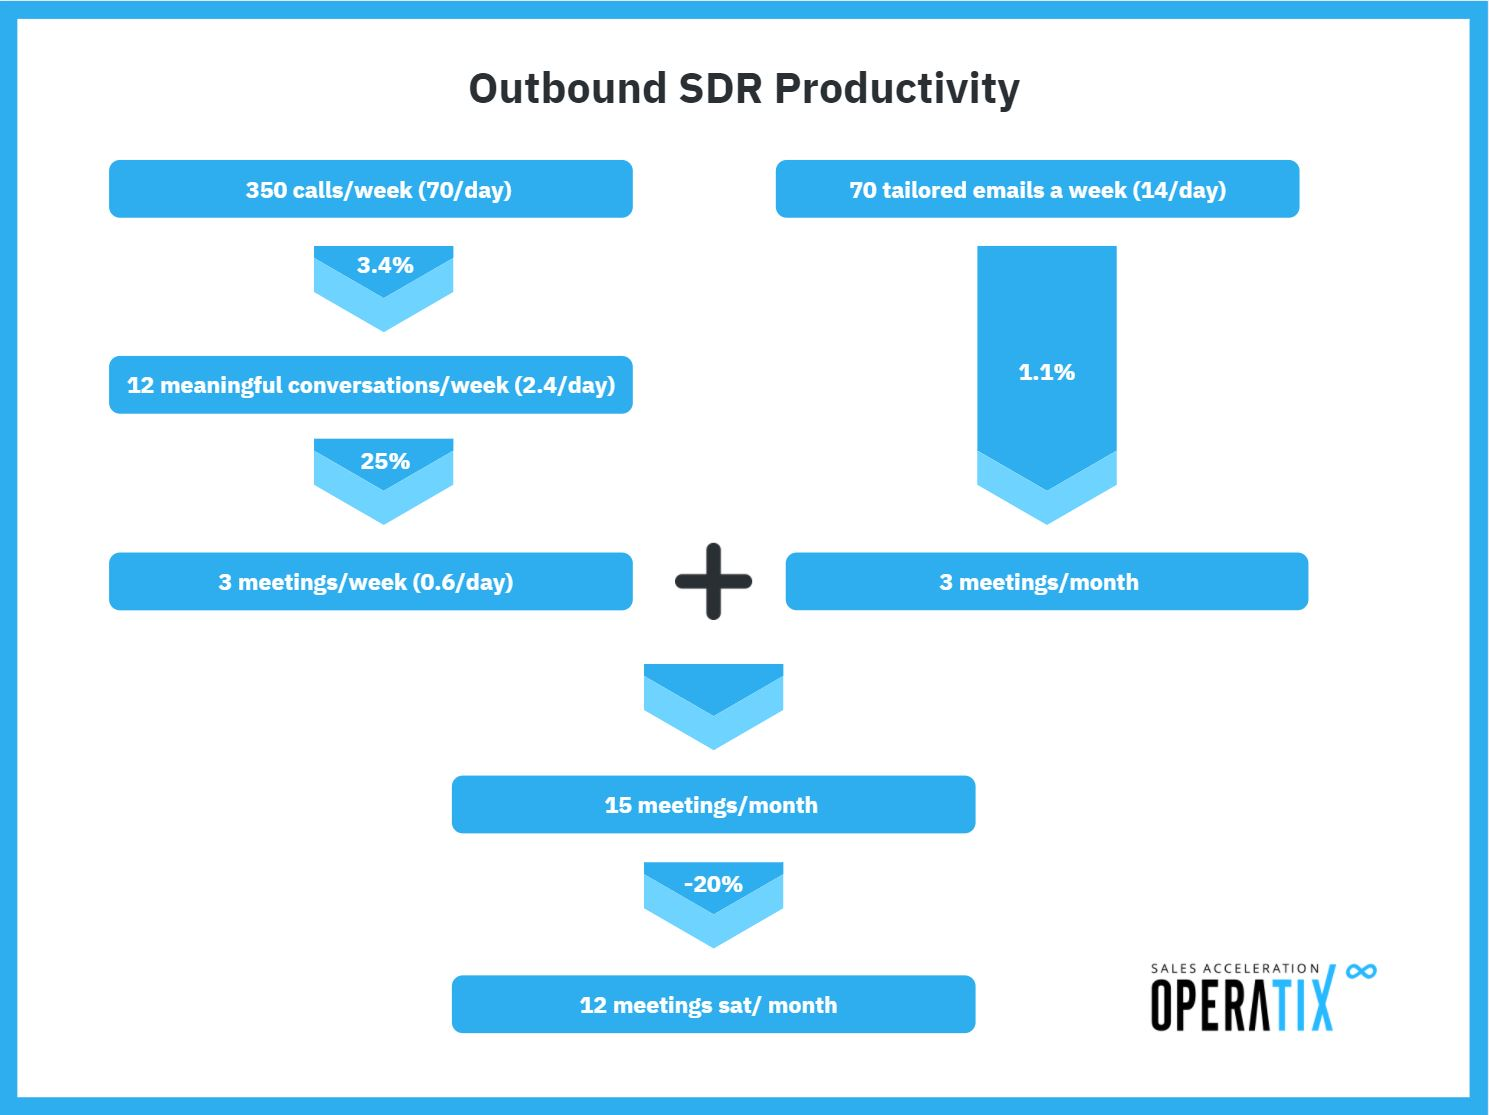 Outbound SDR productivity flow chart